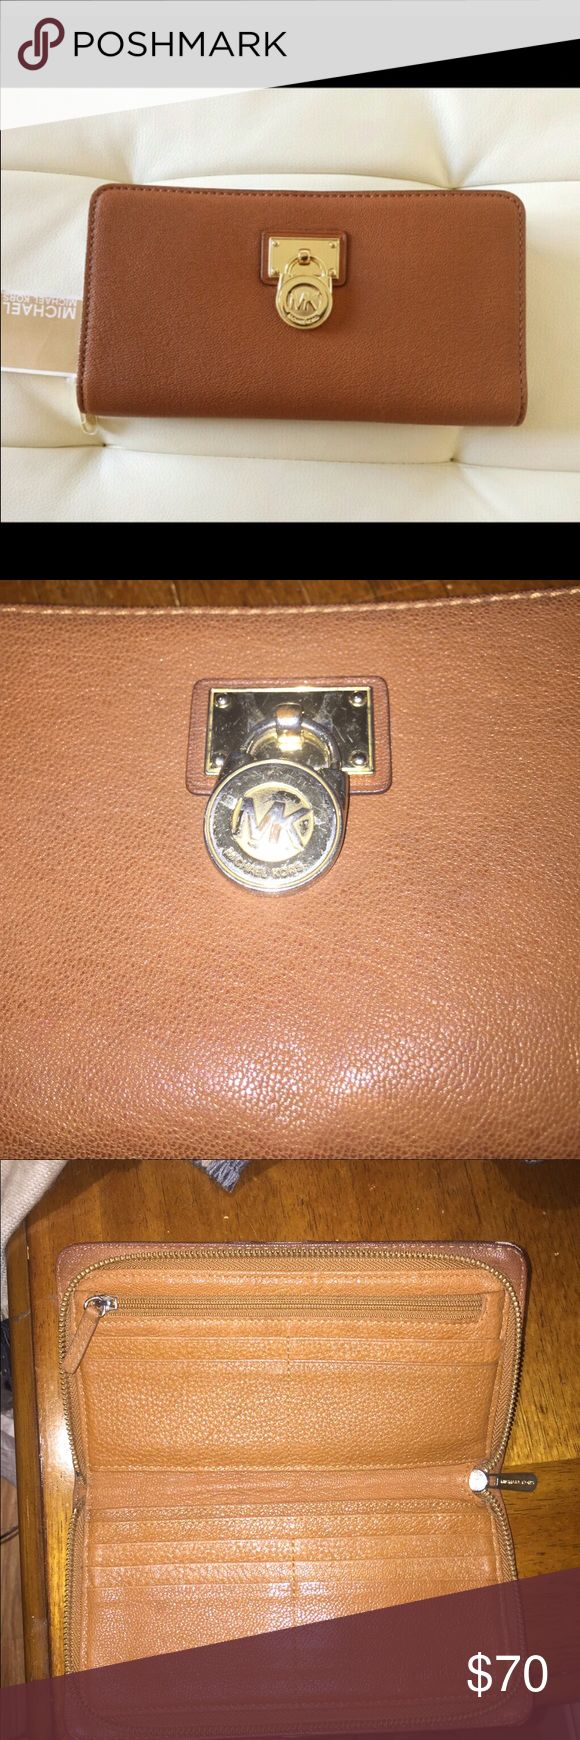 Michael kors hamilton wallet Gently used. Real leather. Shows some imperfections however still in great condition!!!! Michael Kors Bags Wallets